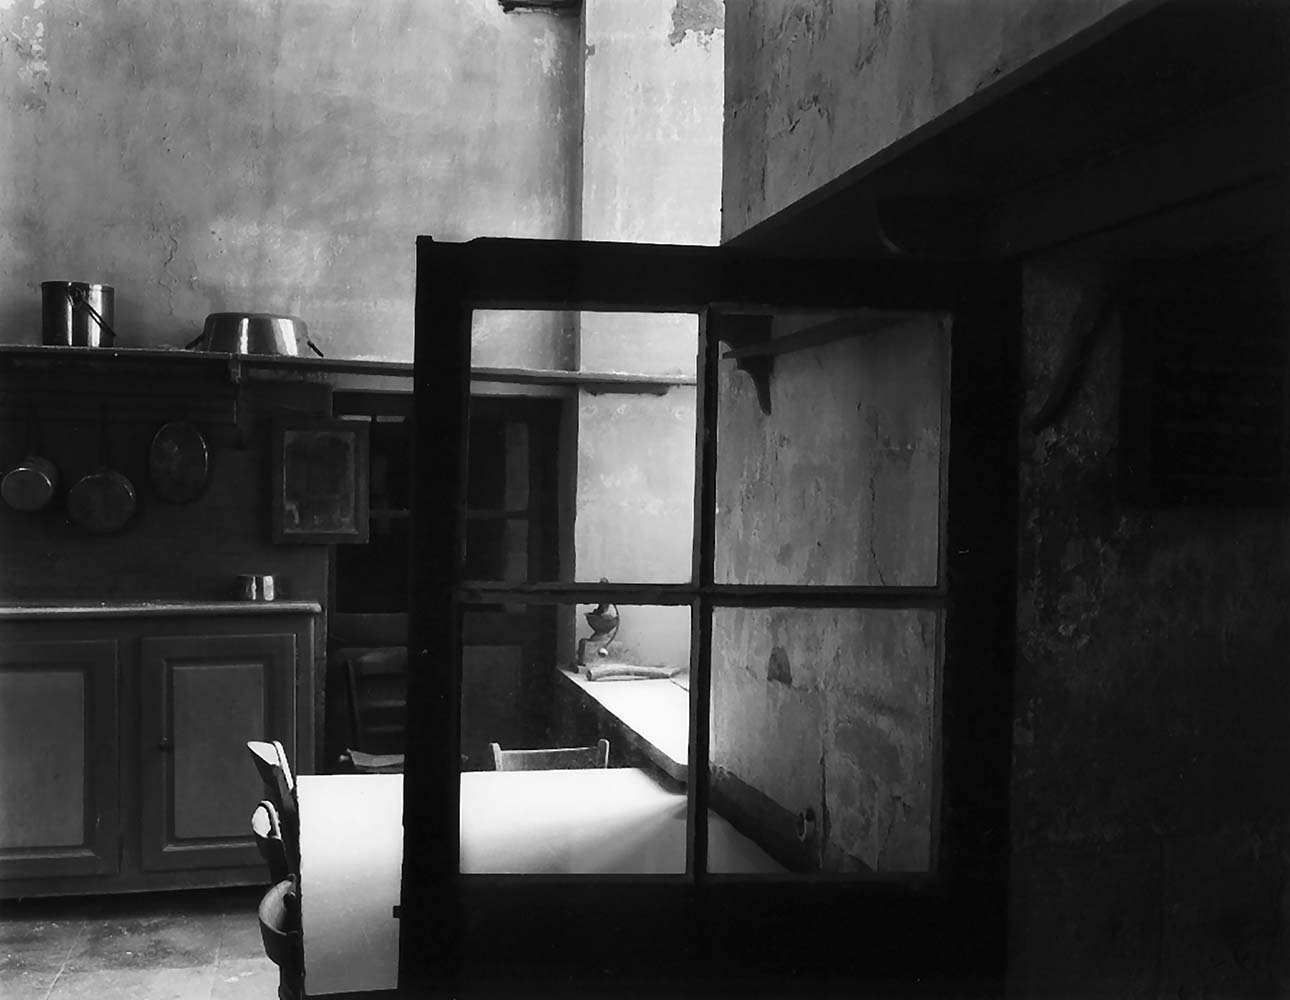 "<span class=""caption-title"">Kitchen Interior</span>, Chastelux, France, 1985<span class=""caption-copyright"">© Rodney Smith</span>"